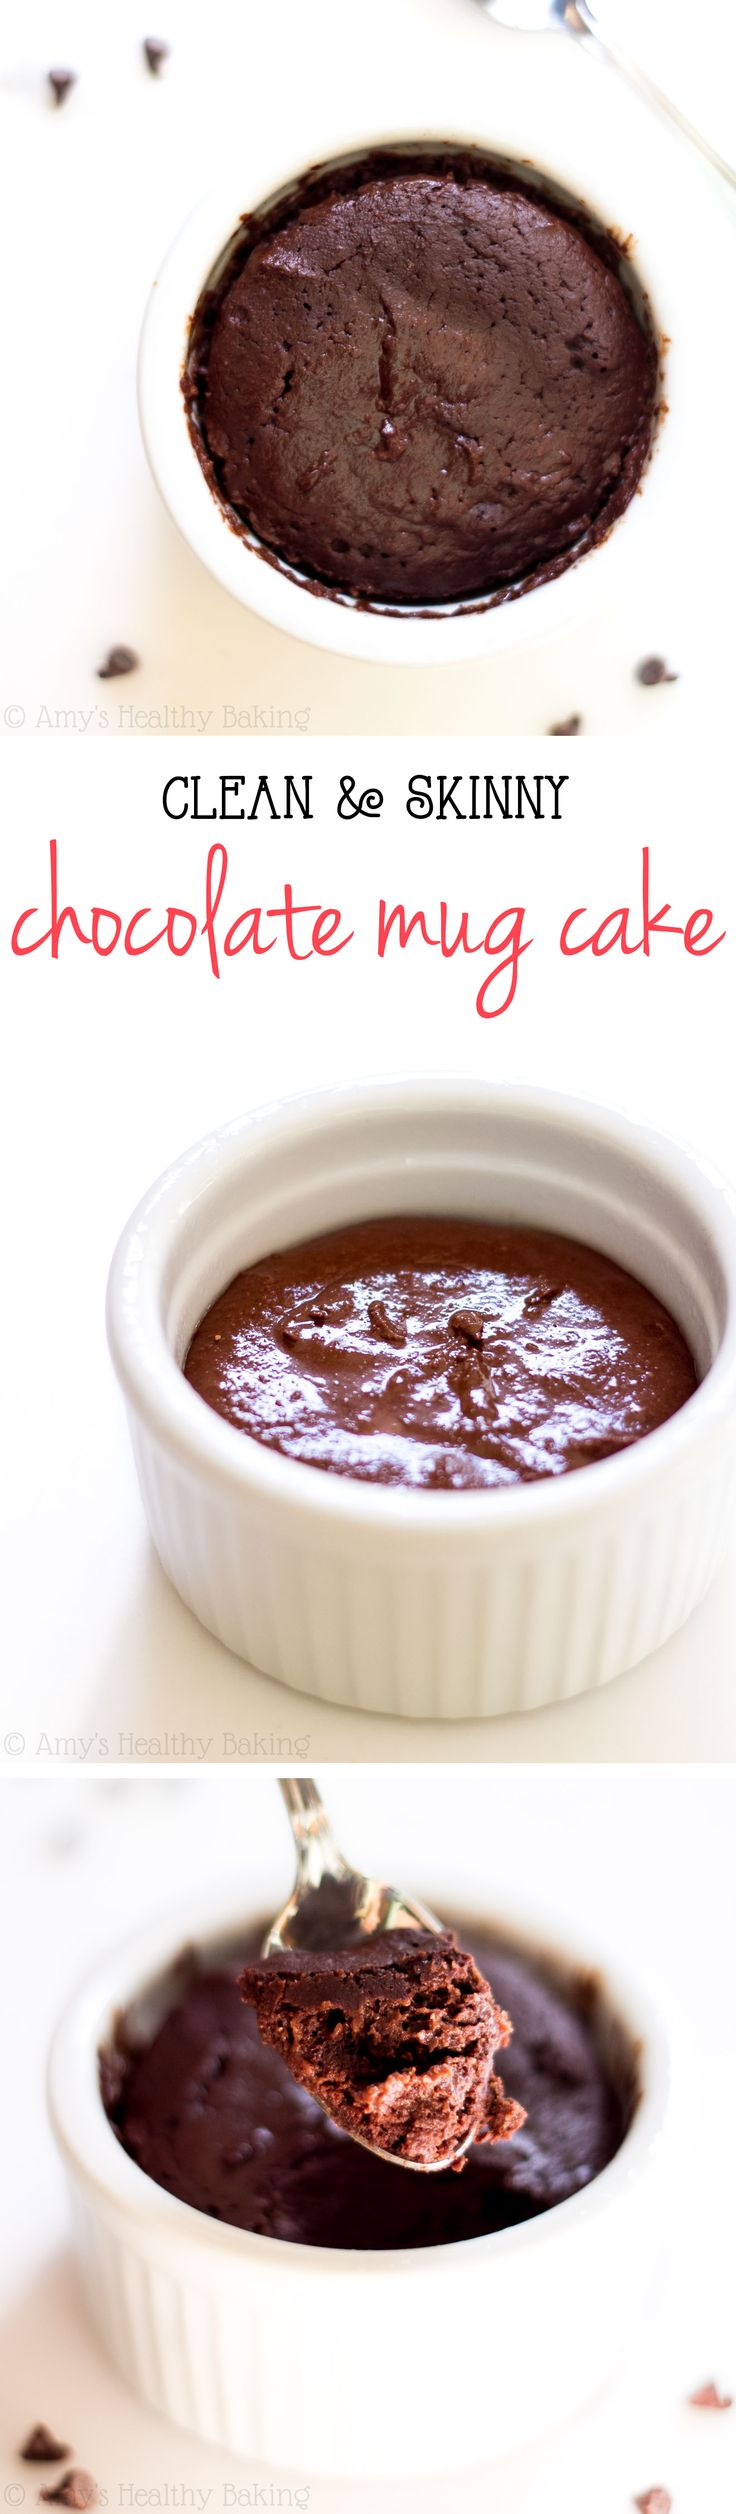 Skinny Single-Serving Chocolate Mug Cake -- a decadent recipe that's practically healthy enough for breakfast & ready in just 10 minutes! Barely 140 calories with 6g of protein!